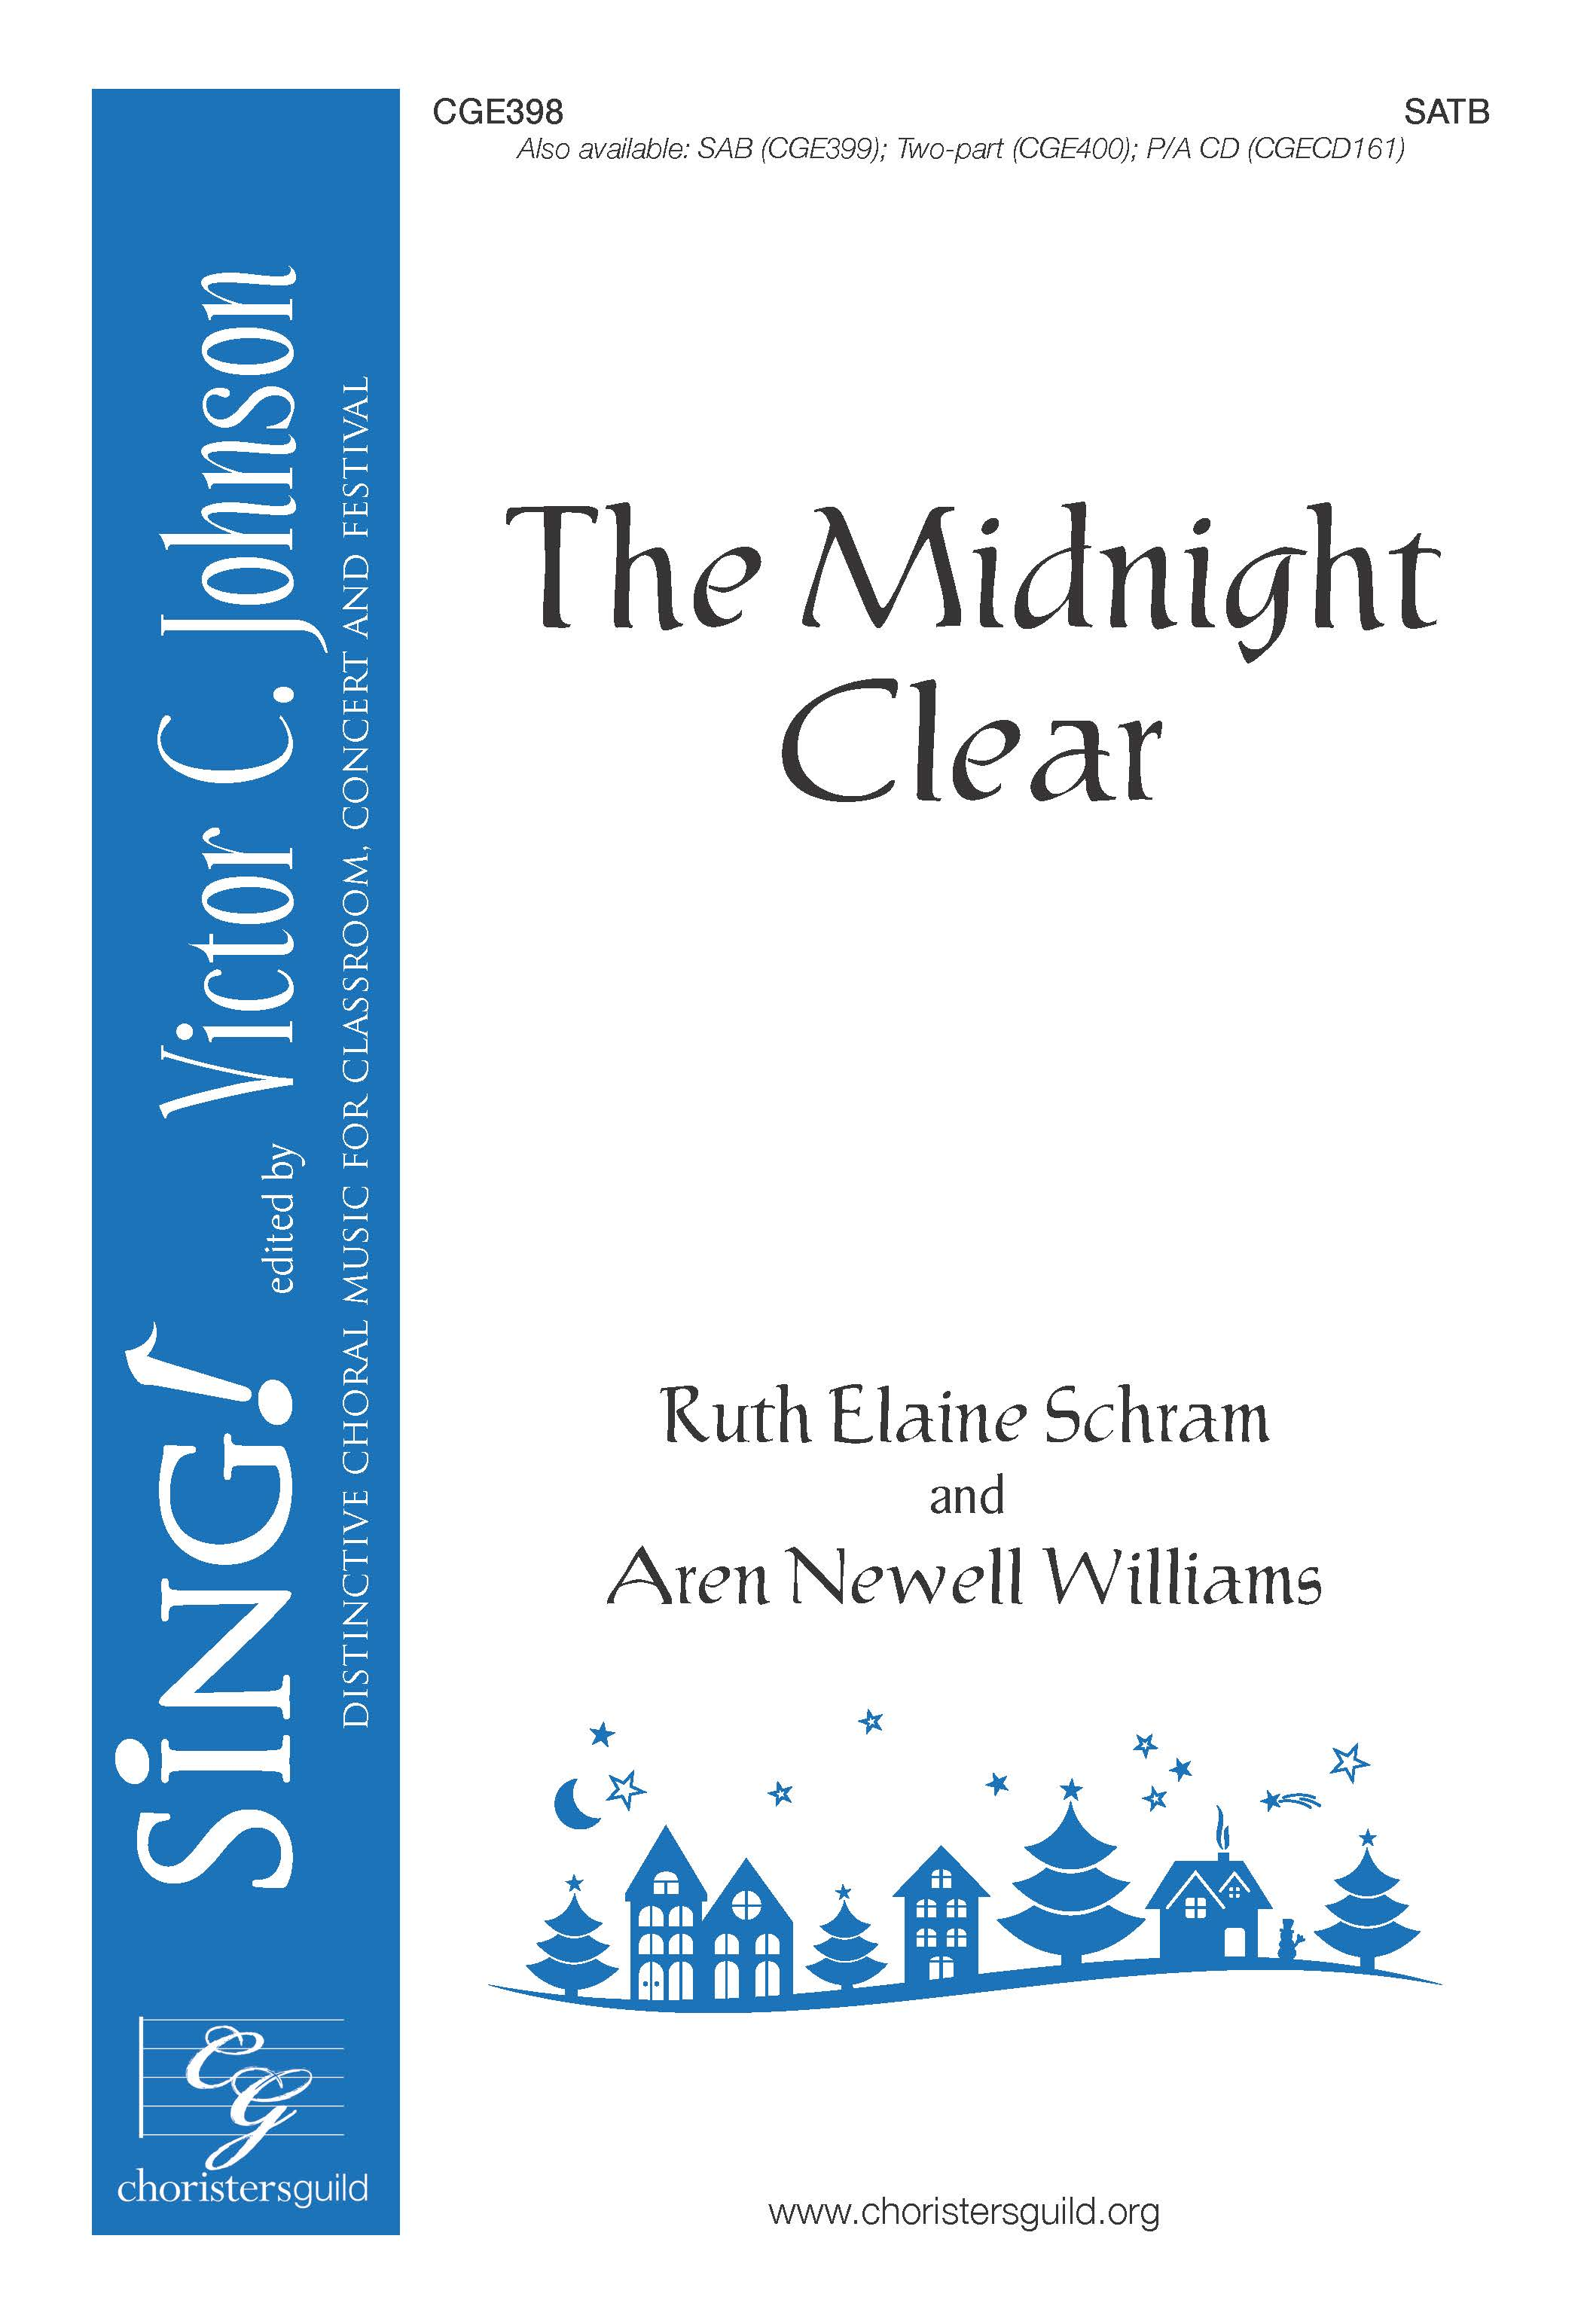 The Midnight Clear - SATB